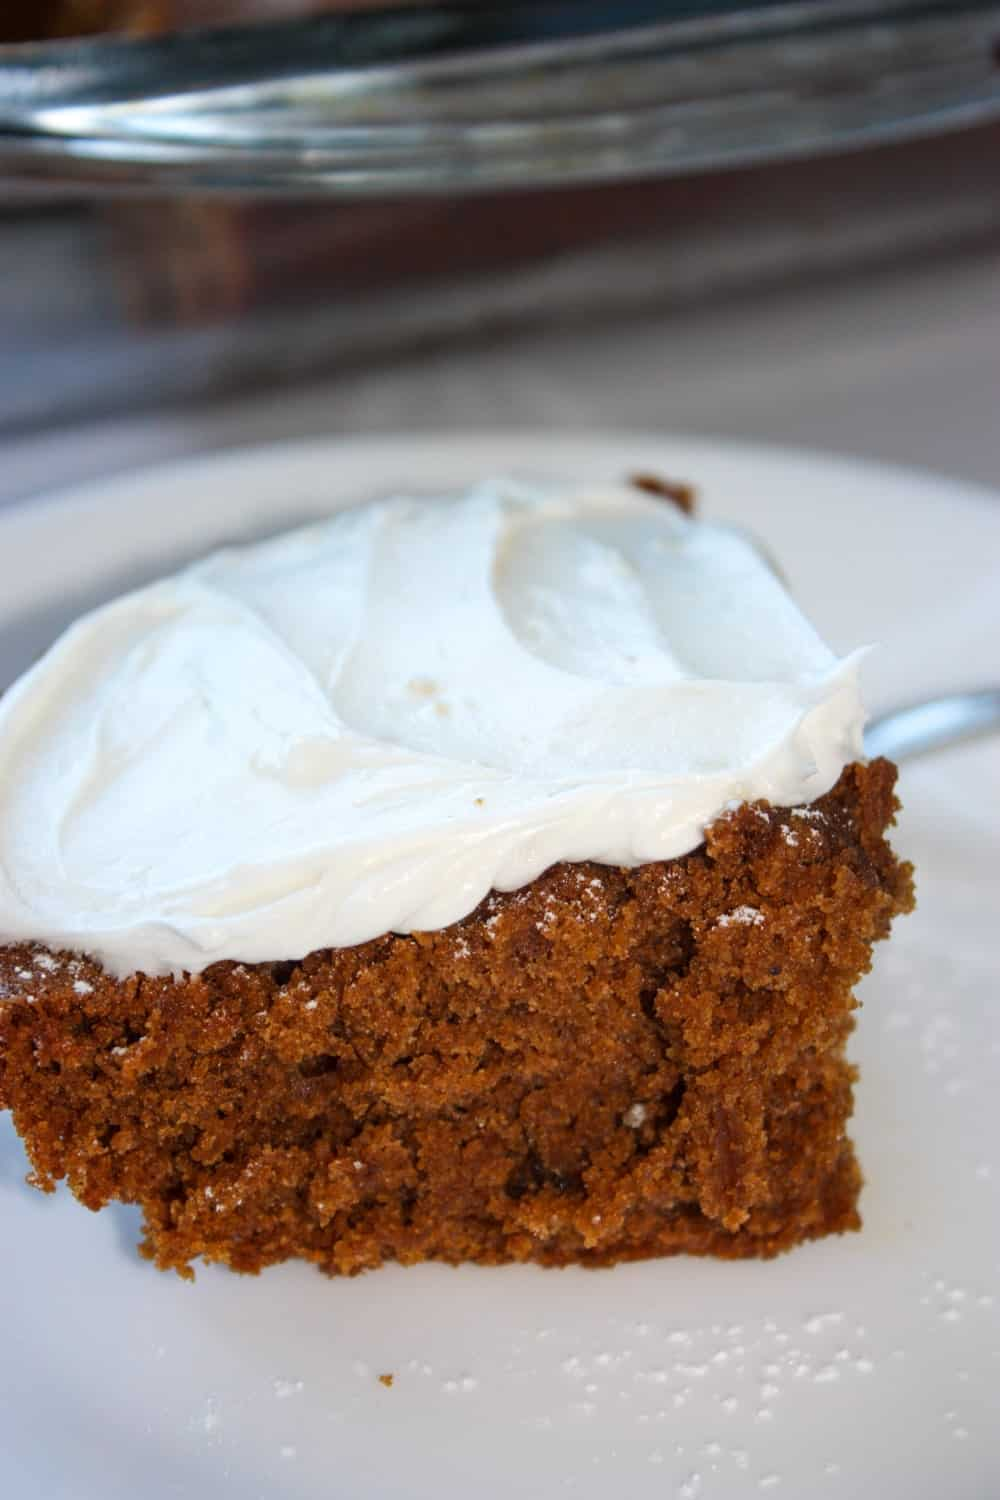 This gluten free Gingerbread Cake will be the beginning of a new tradition at holiday meals!  I was so impressed with this moist, richly flavoured cake.